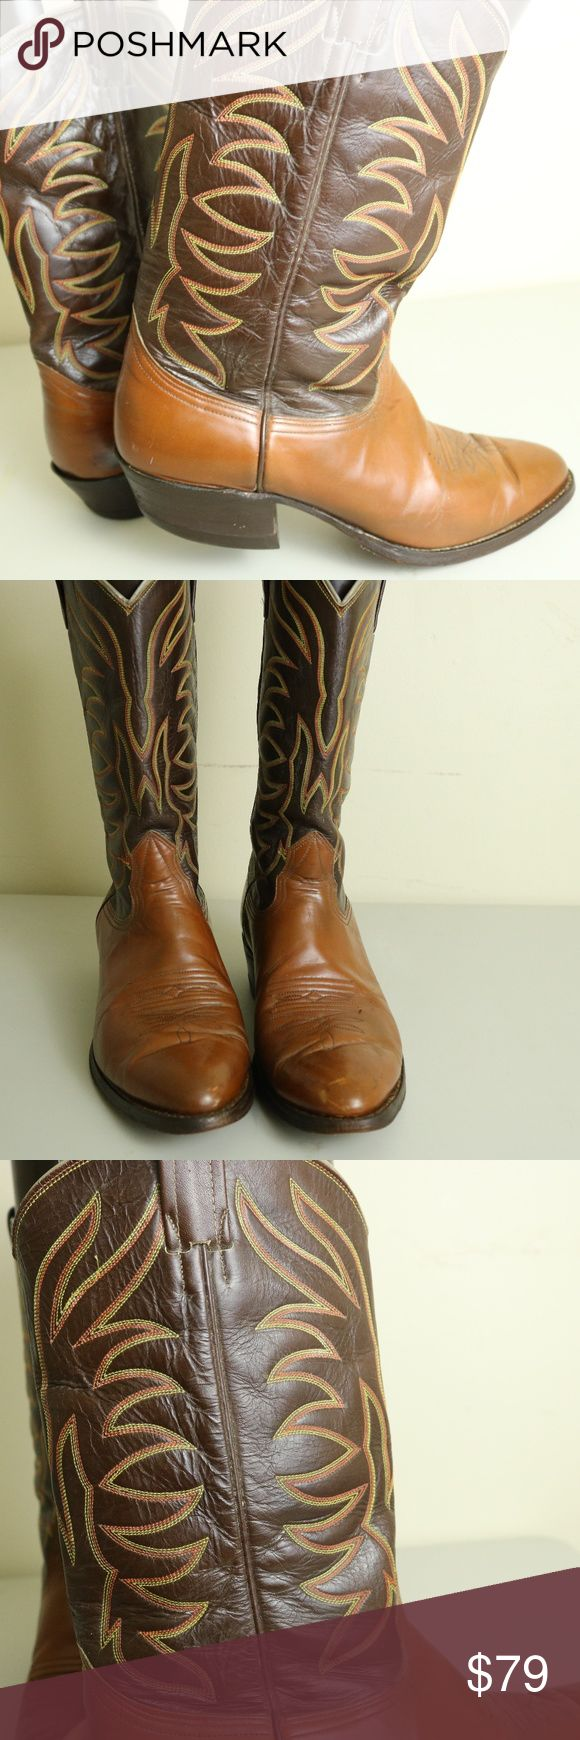 NOGANA MEN LEATHER WESTERN BOOTS SIZE11.5 ITEM IS A PAIR OF PRE OWNED NAGONA  MEN S WESTERN / COW BOY LEATHER BOOTS IN A SIZE 11.5 ITEM DOES HAVE SIGNS OF WEAR AROUND THE UPPER HEEL AREA IN THE FORM OF SCUFFING OTHER THAN THAT,  ITEM IS OTHER WISE INTACT WITH LOTS OF WEAR LEFT IN THEM NOCANA Shoes Cowboy & Western Boots